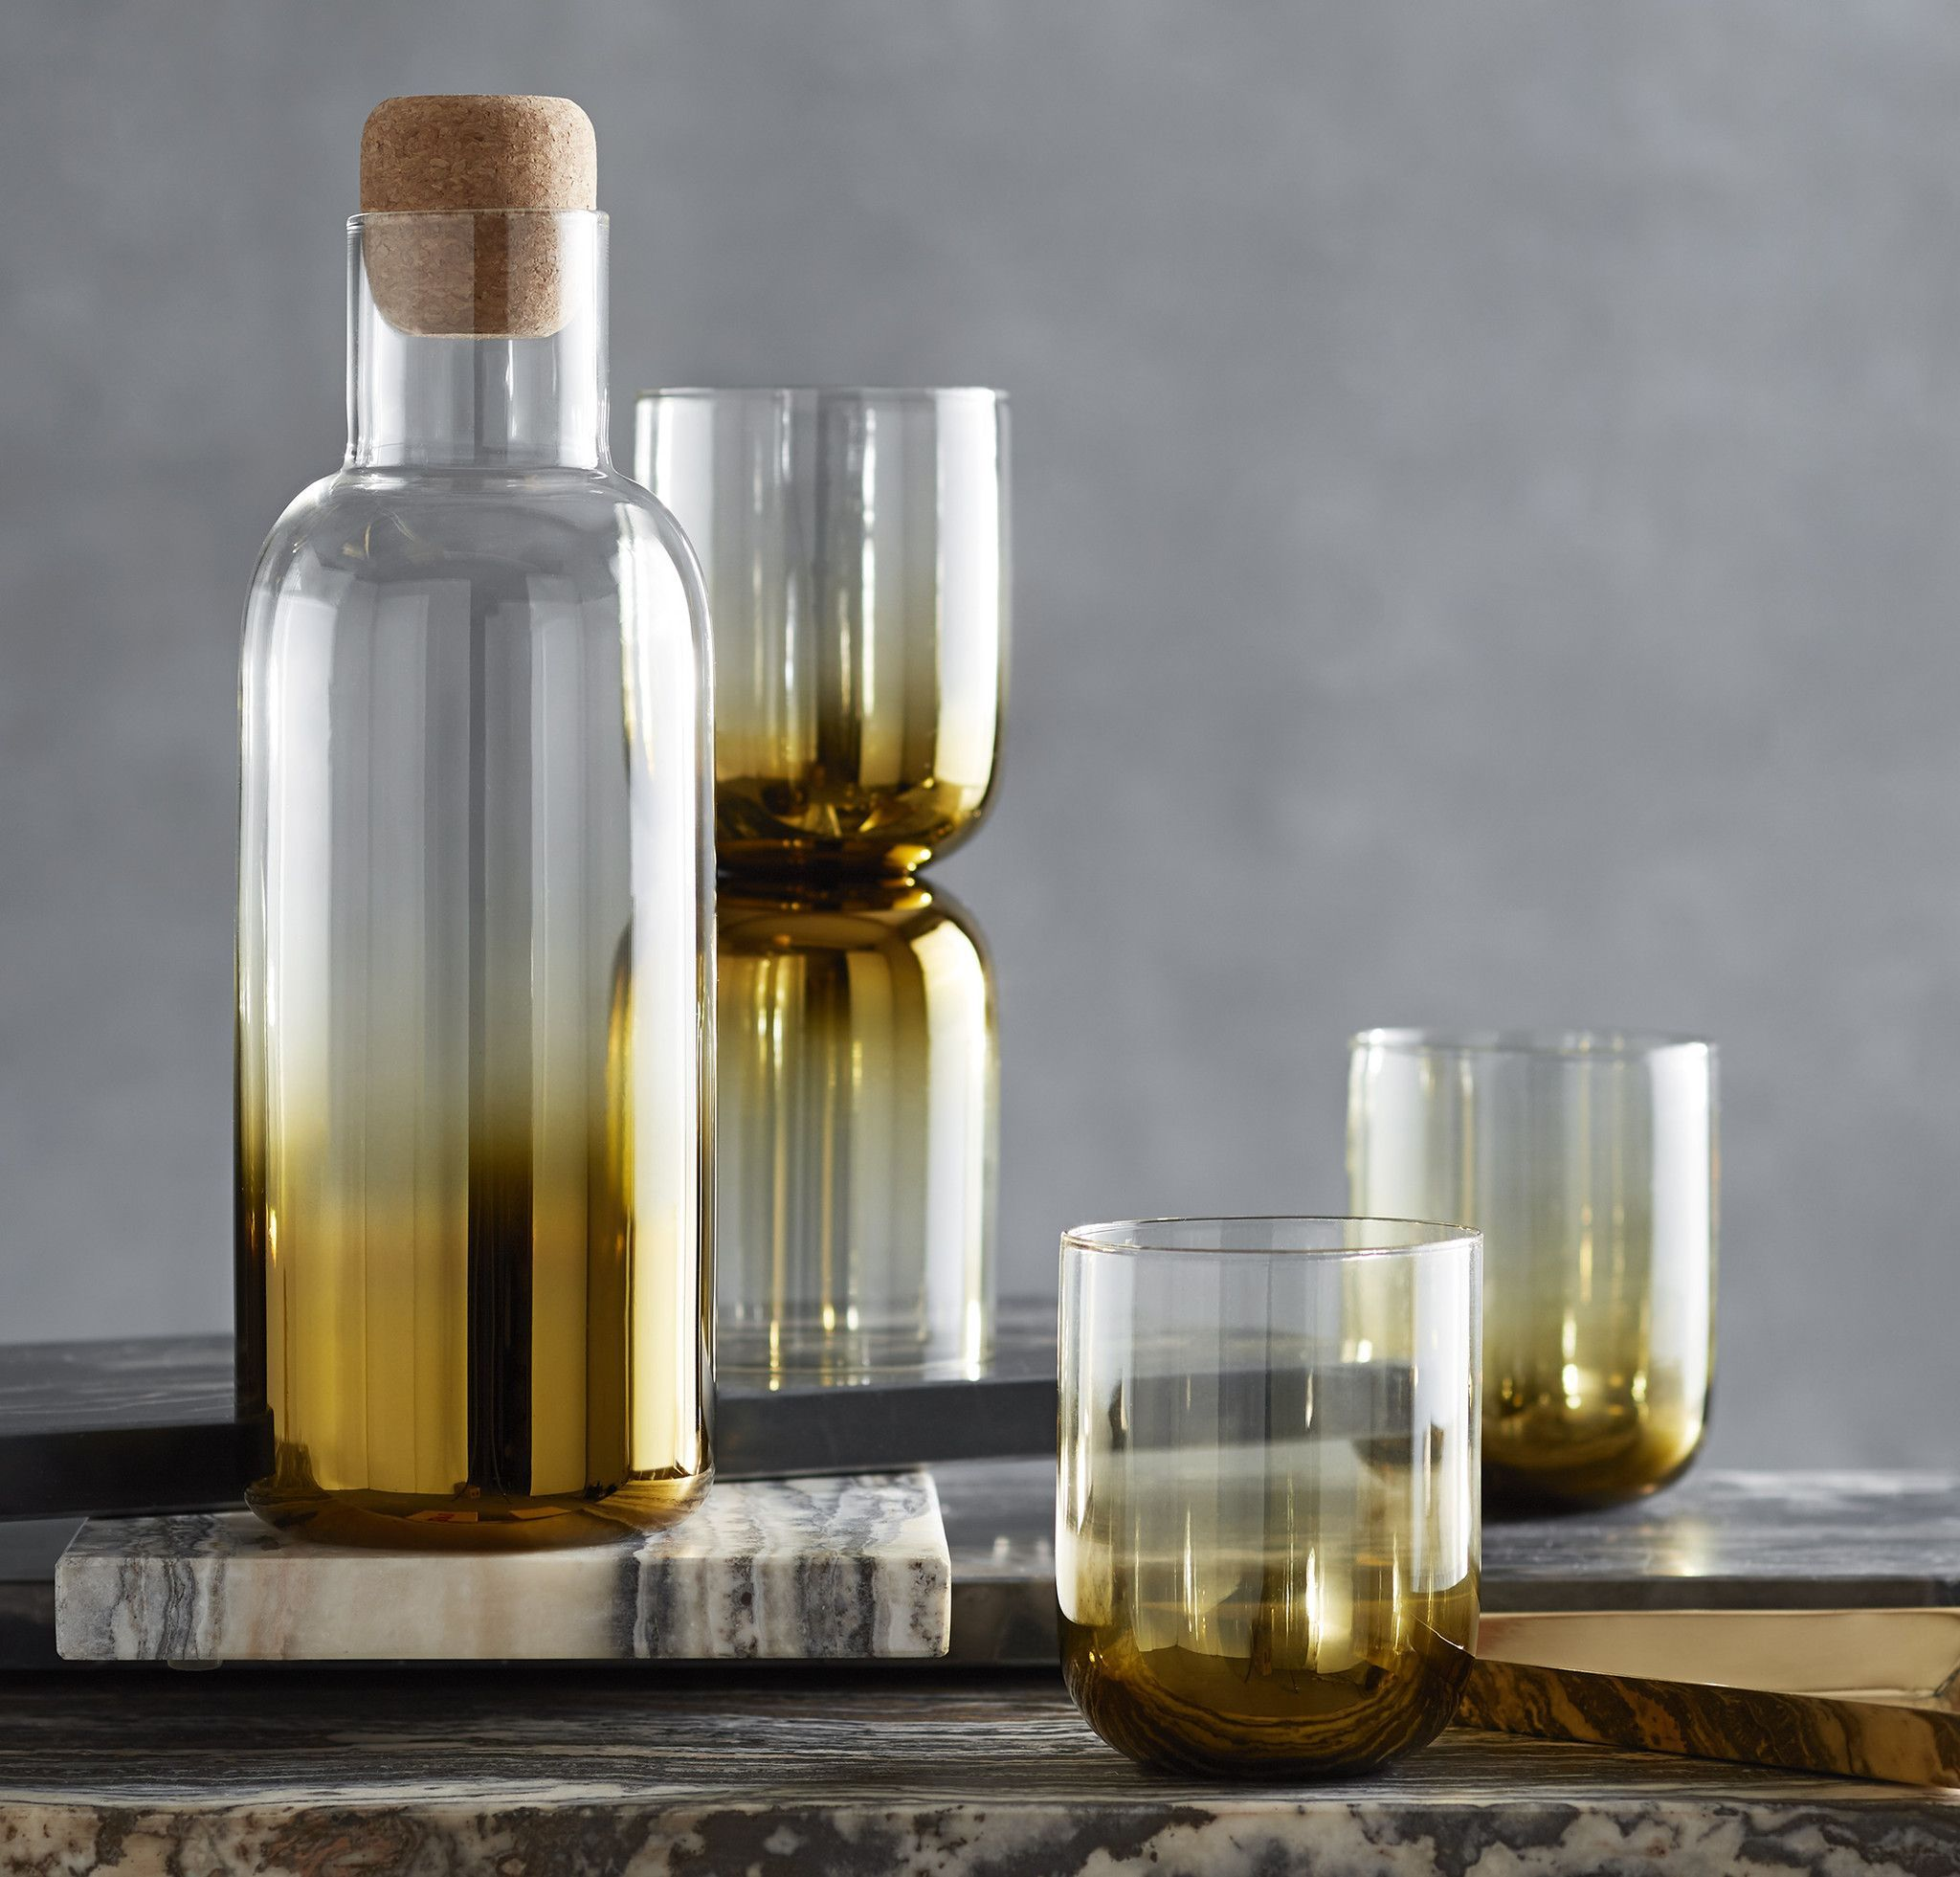 Golden Ombre Glass Glass material, Decanter, Cork stoppers